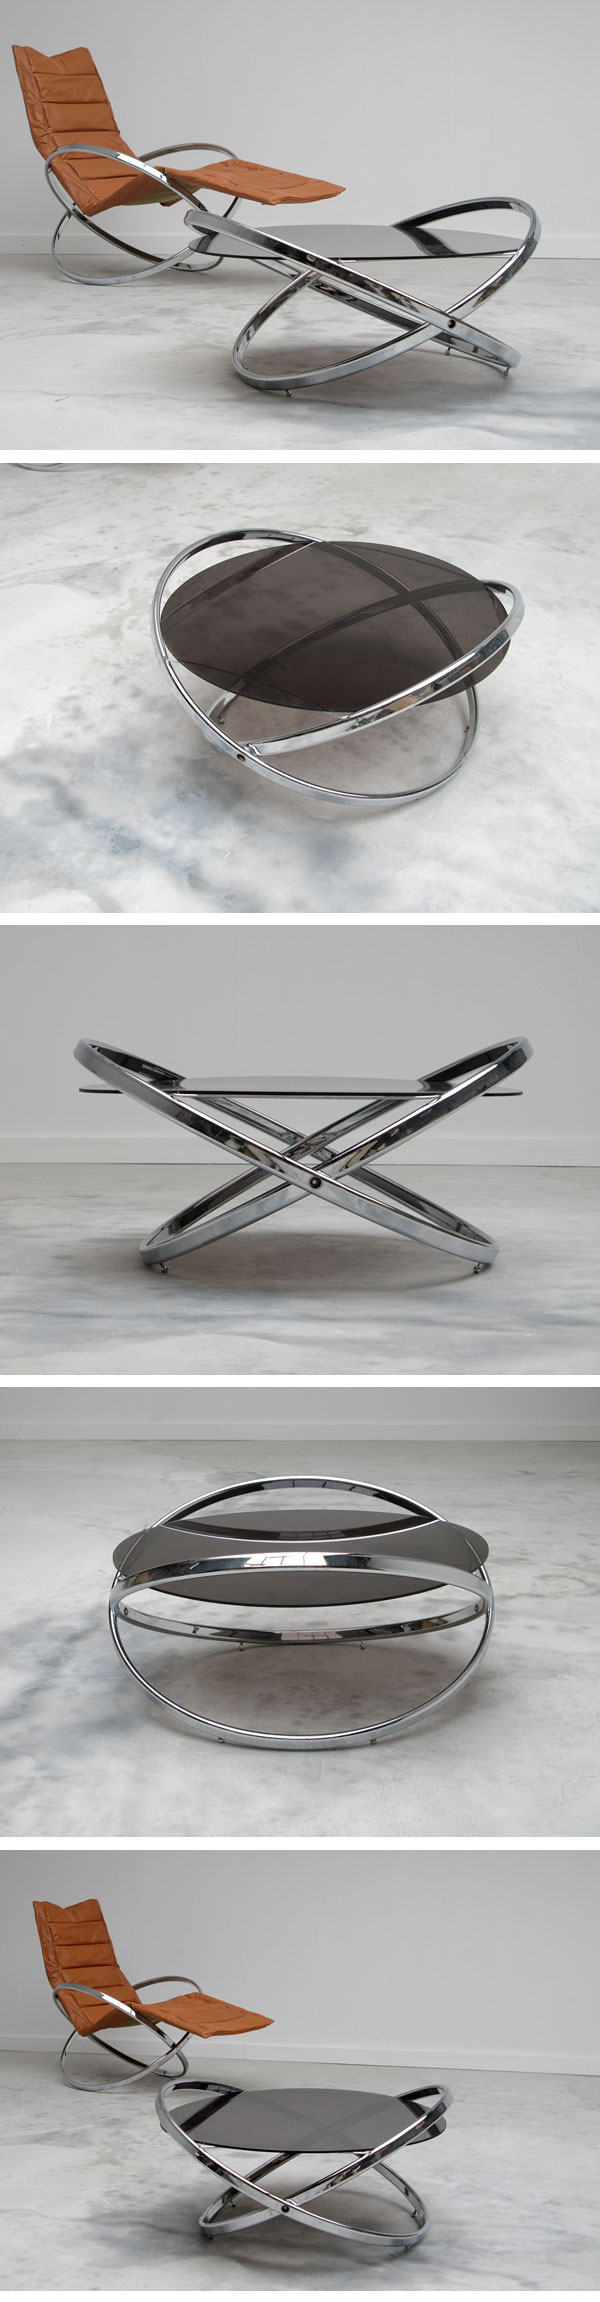 1970, JET STAR, coffee, table, Roger Lecal, 60s, chrome, pergay